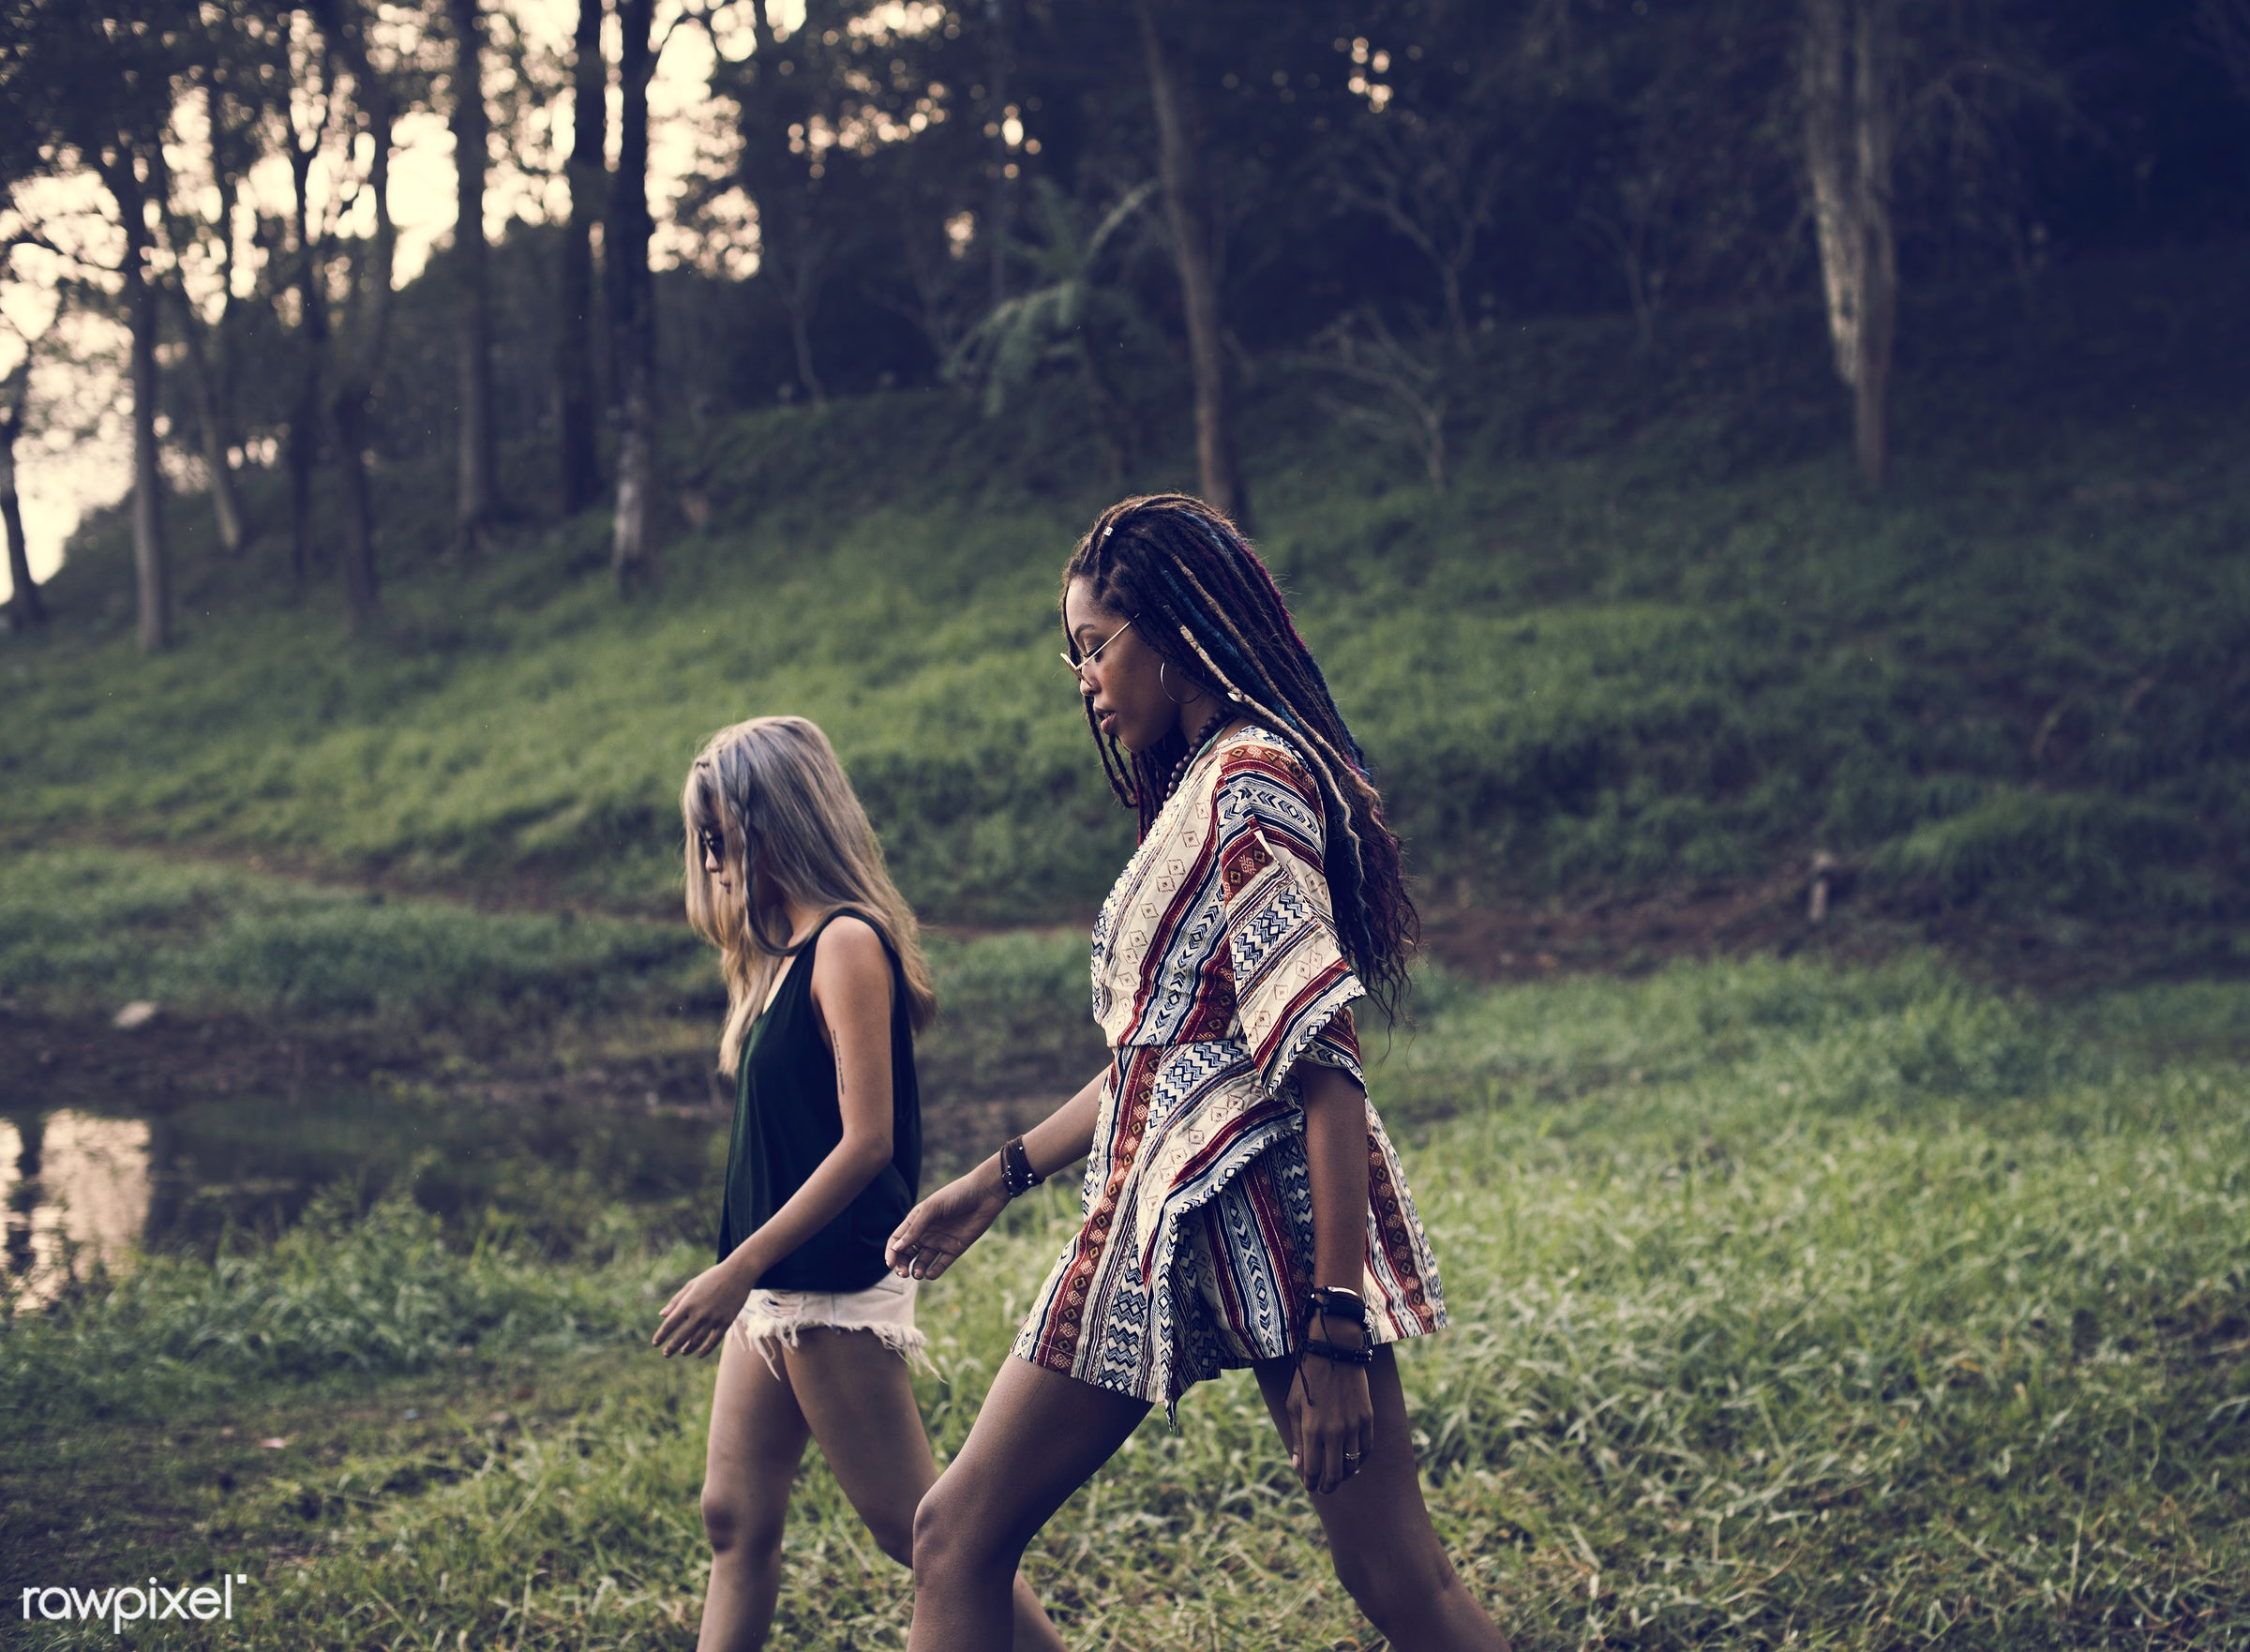 person, walking, comrade, by, travel, people, together, wanderlust, friends, life, nature, woman, lifestyle, intimate,...